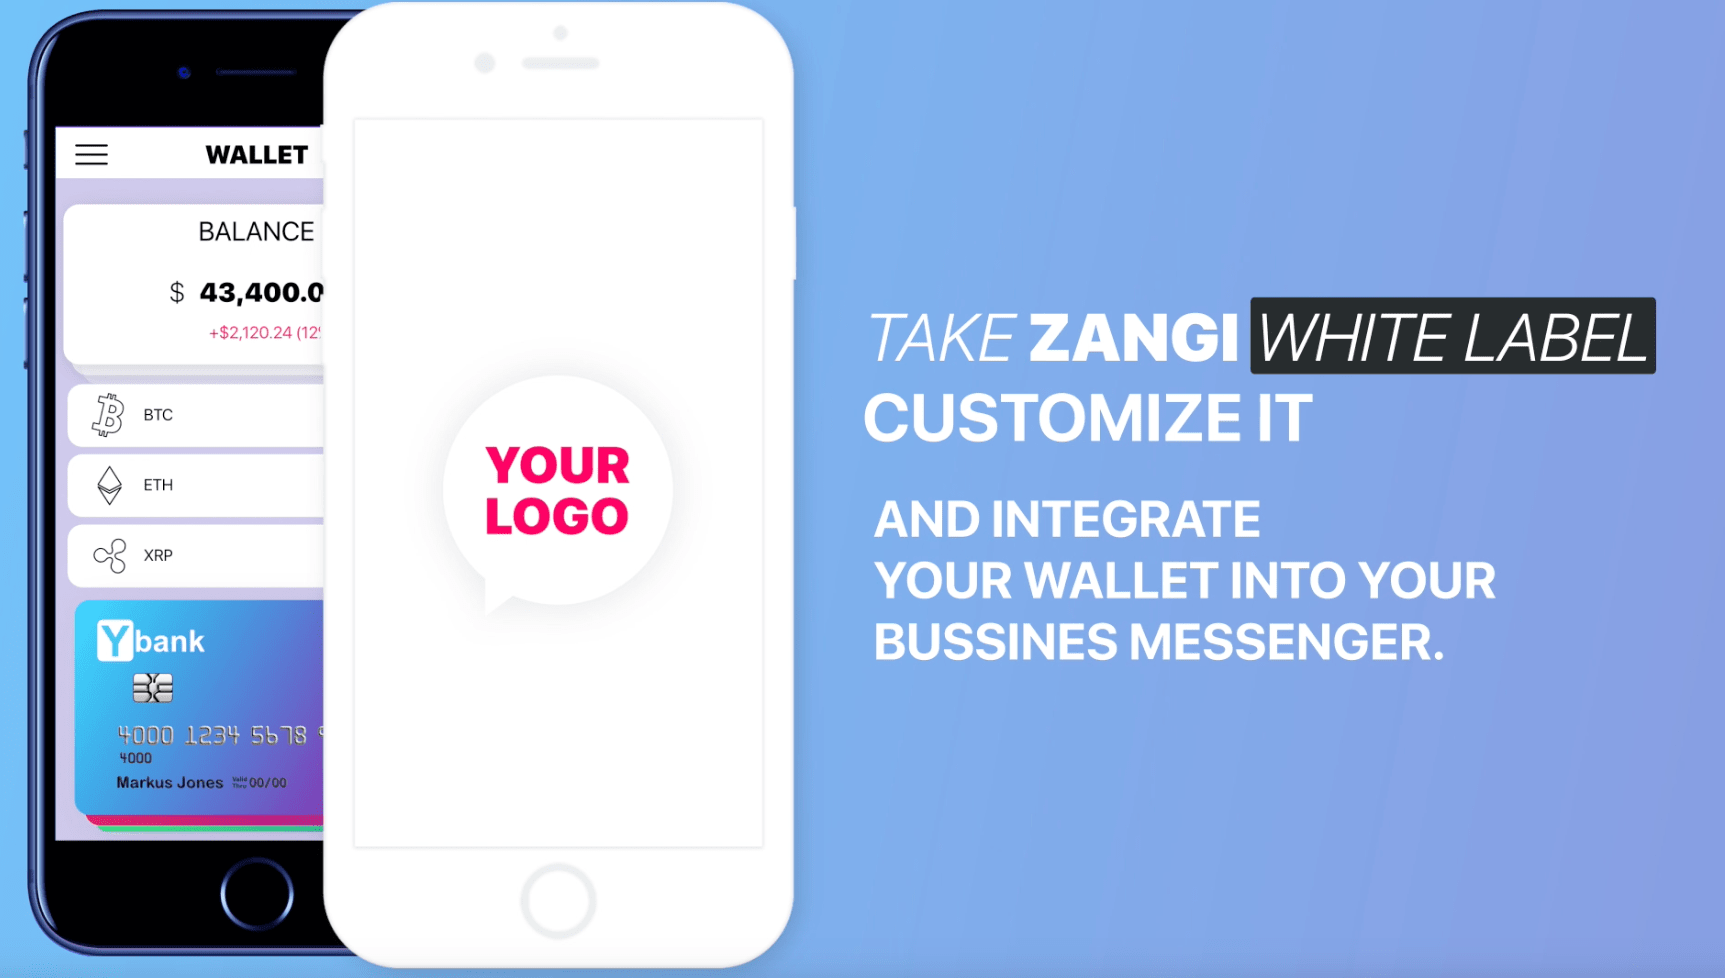 integrate your wallet into zangi business messenger